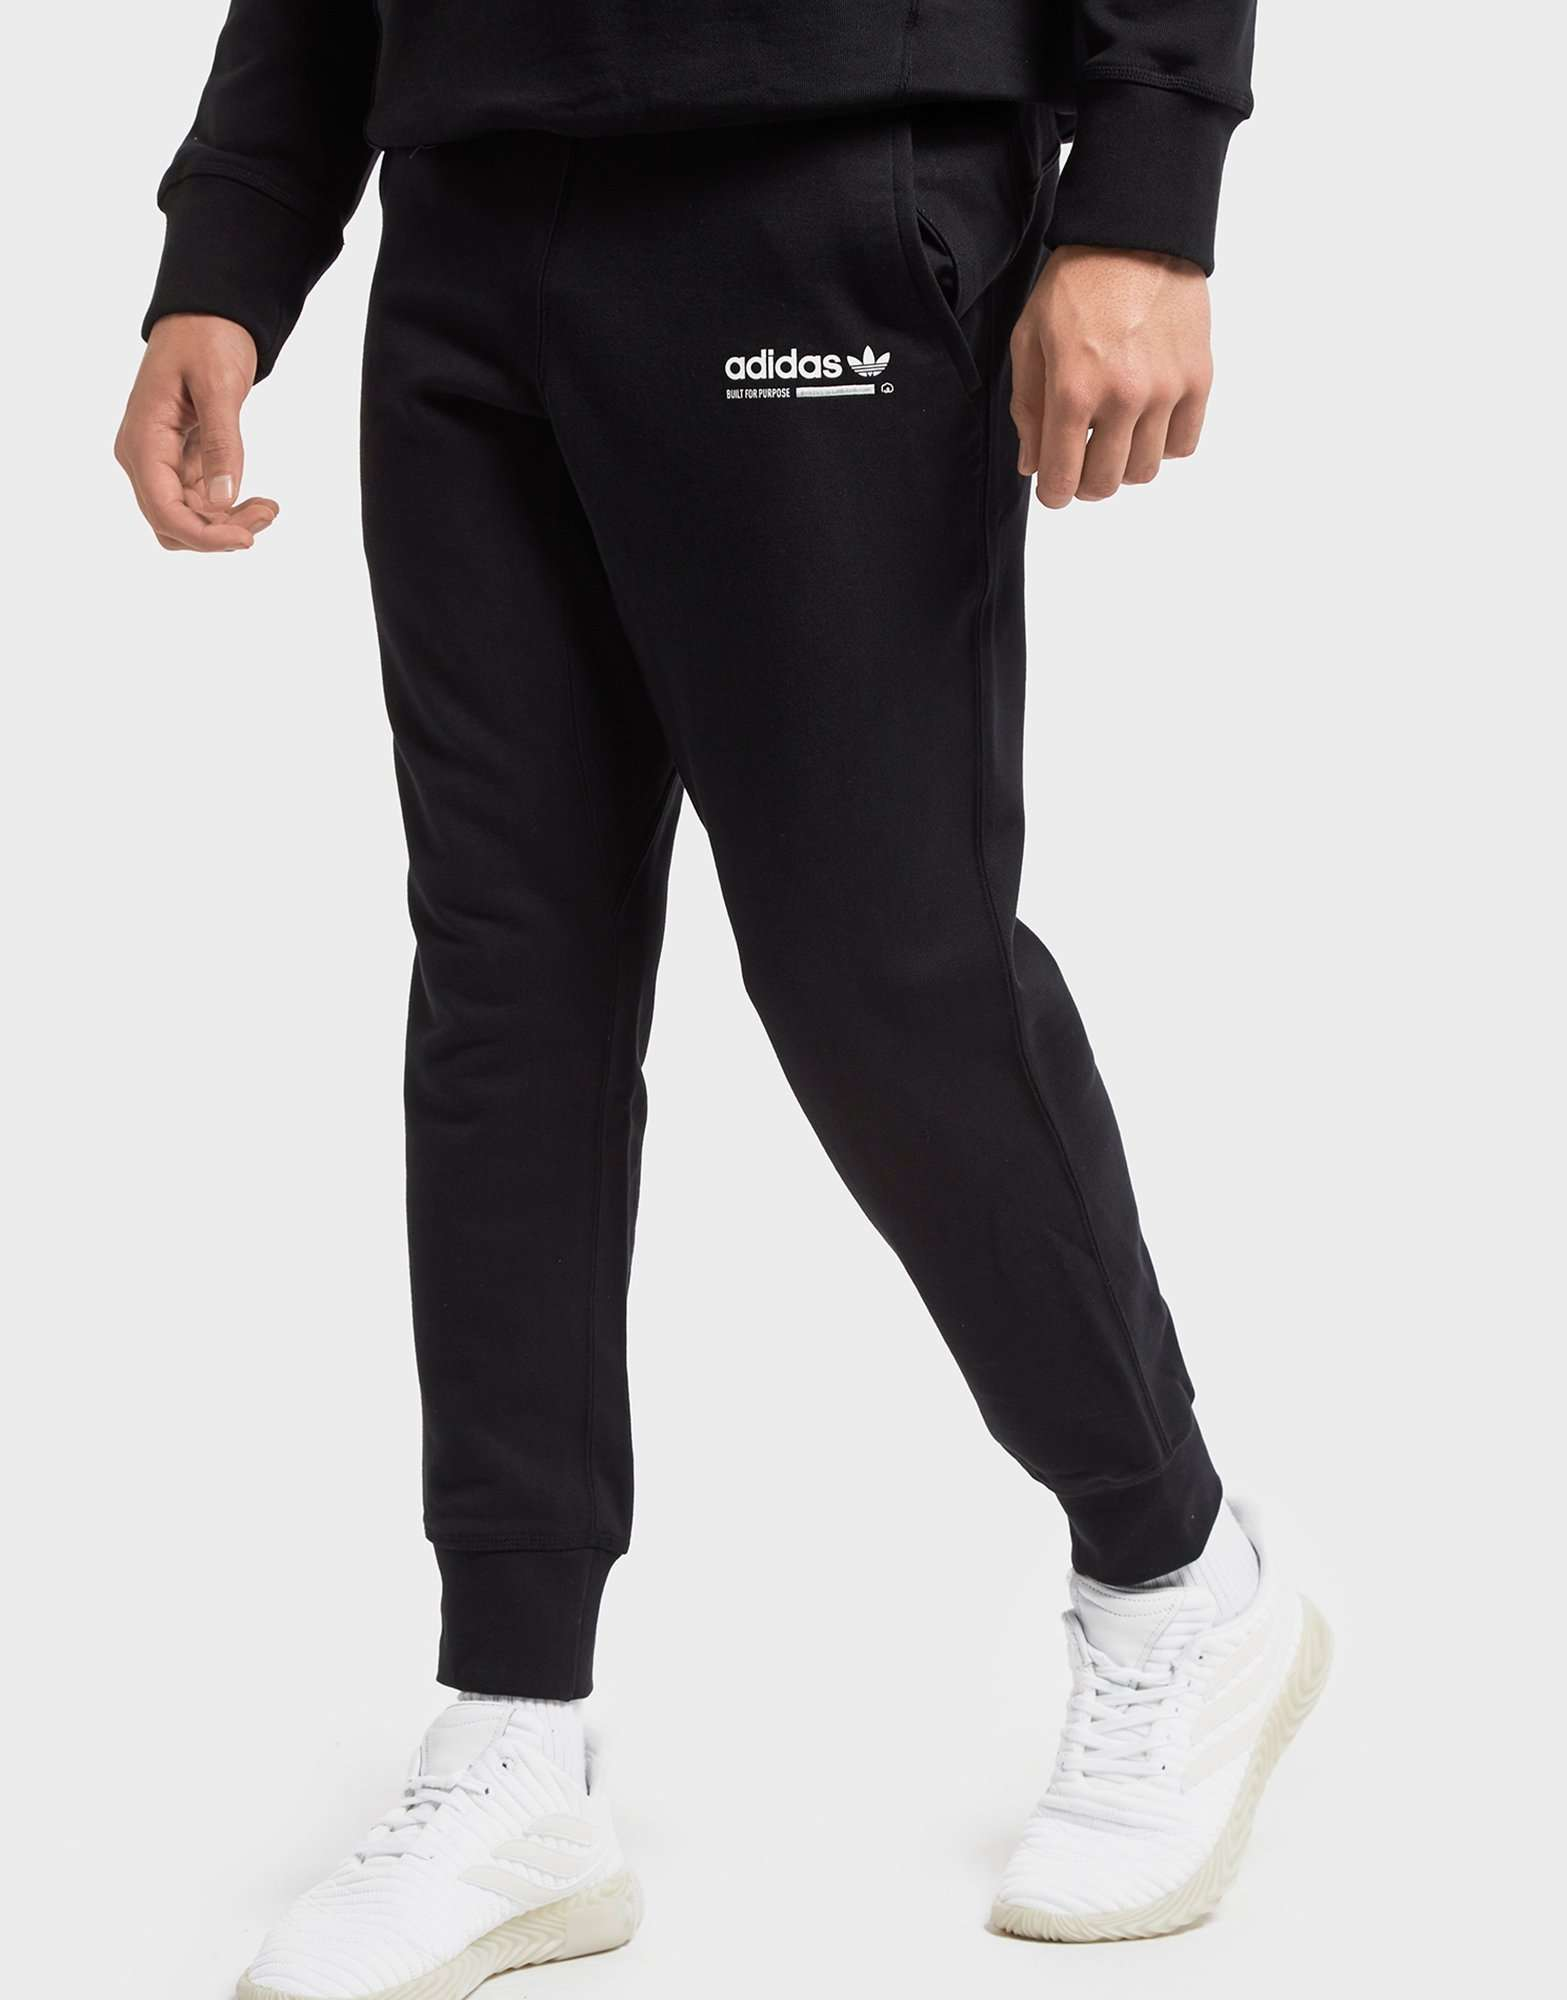 adidas Originals Kaval Cuffed Fleece Pants